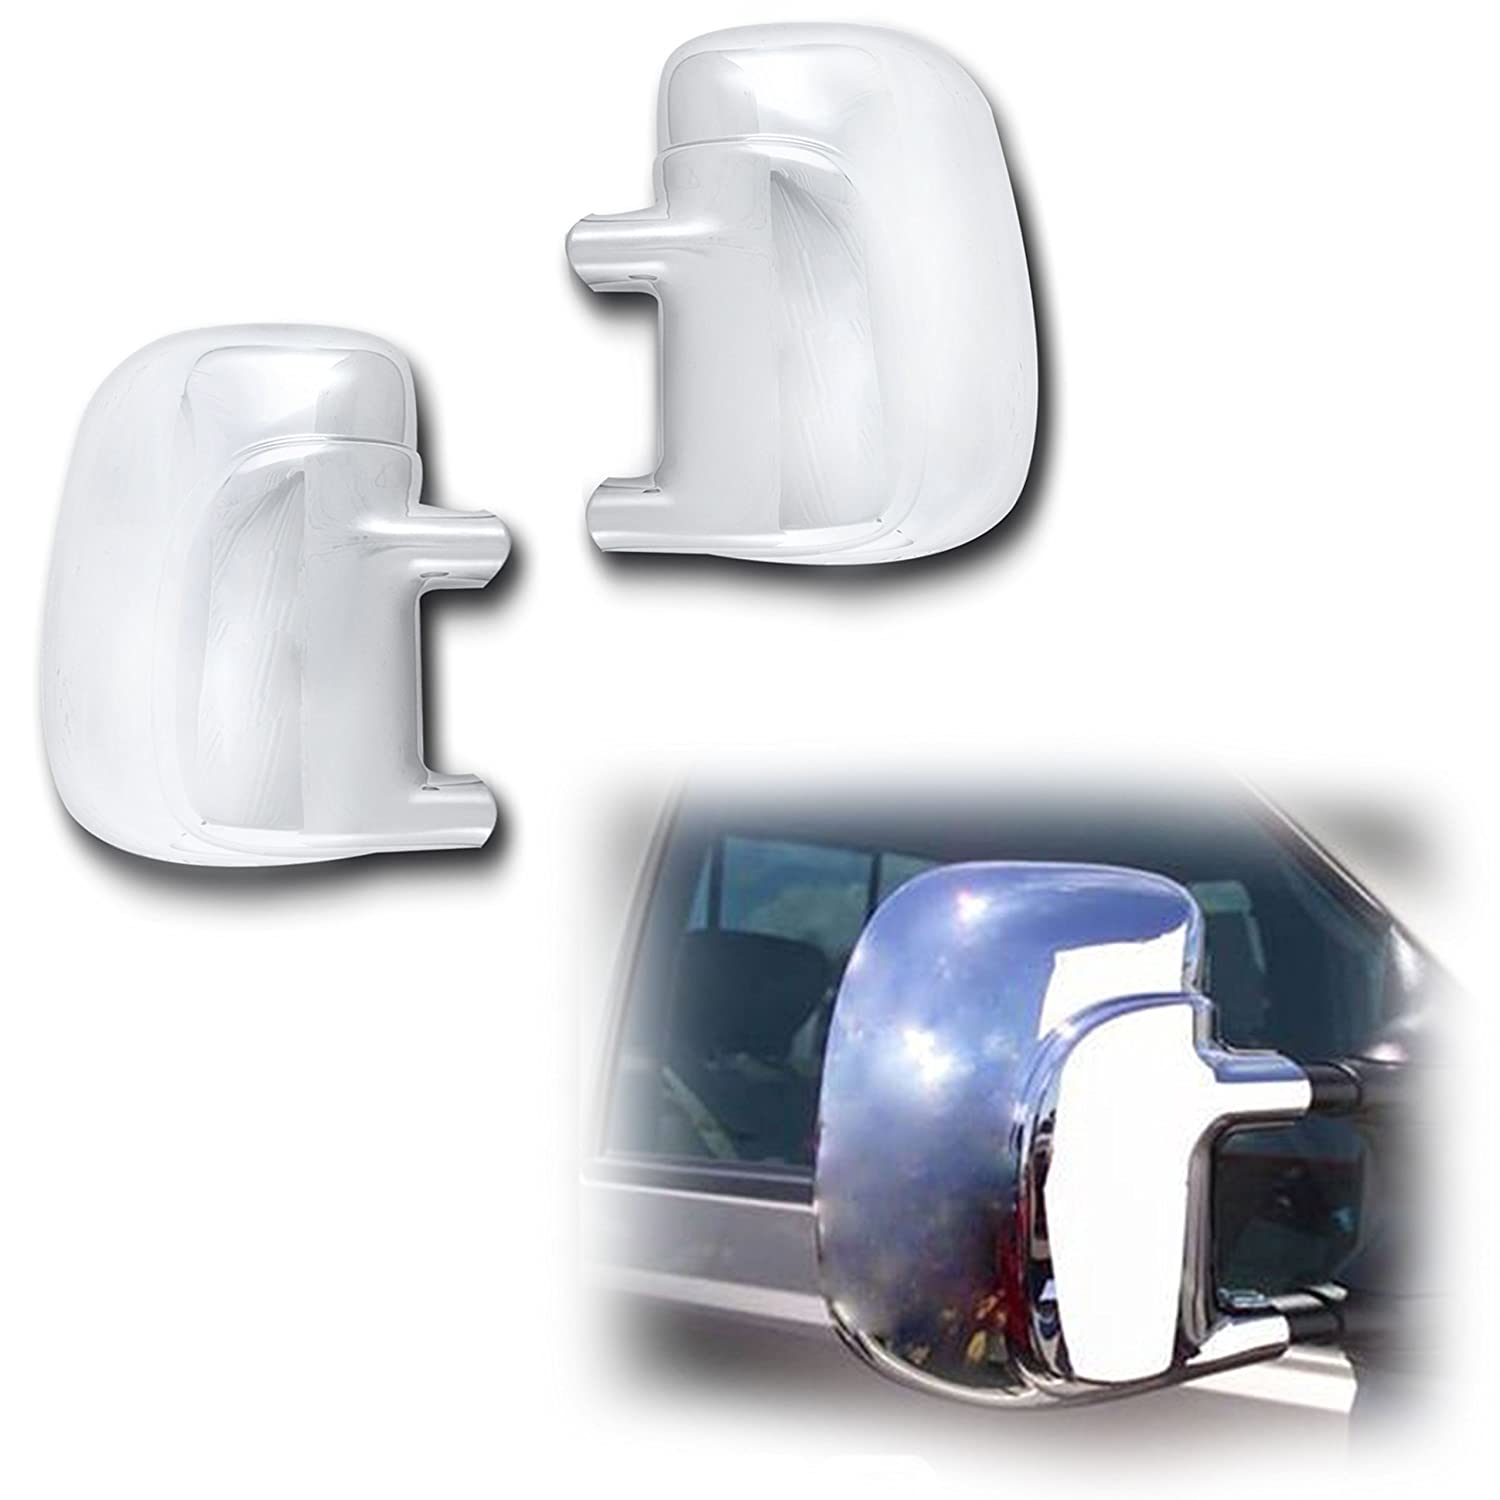 Triple Chrome 4 Door Handle Cover For 99-16 Ford Super Duty F250+F350+F450+F550